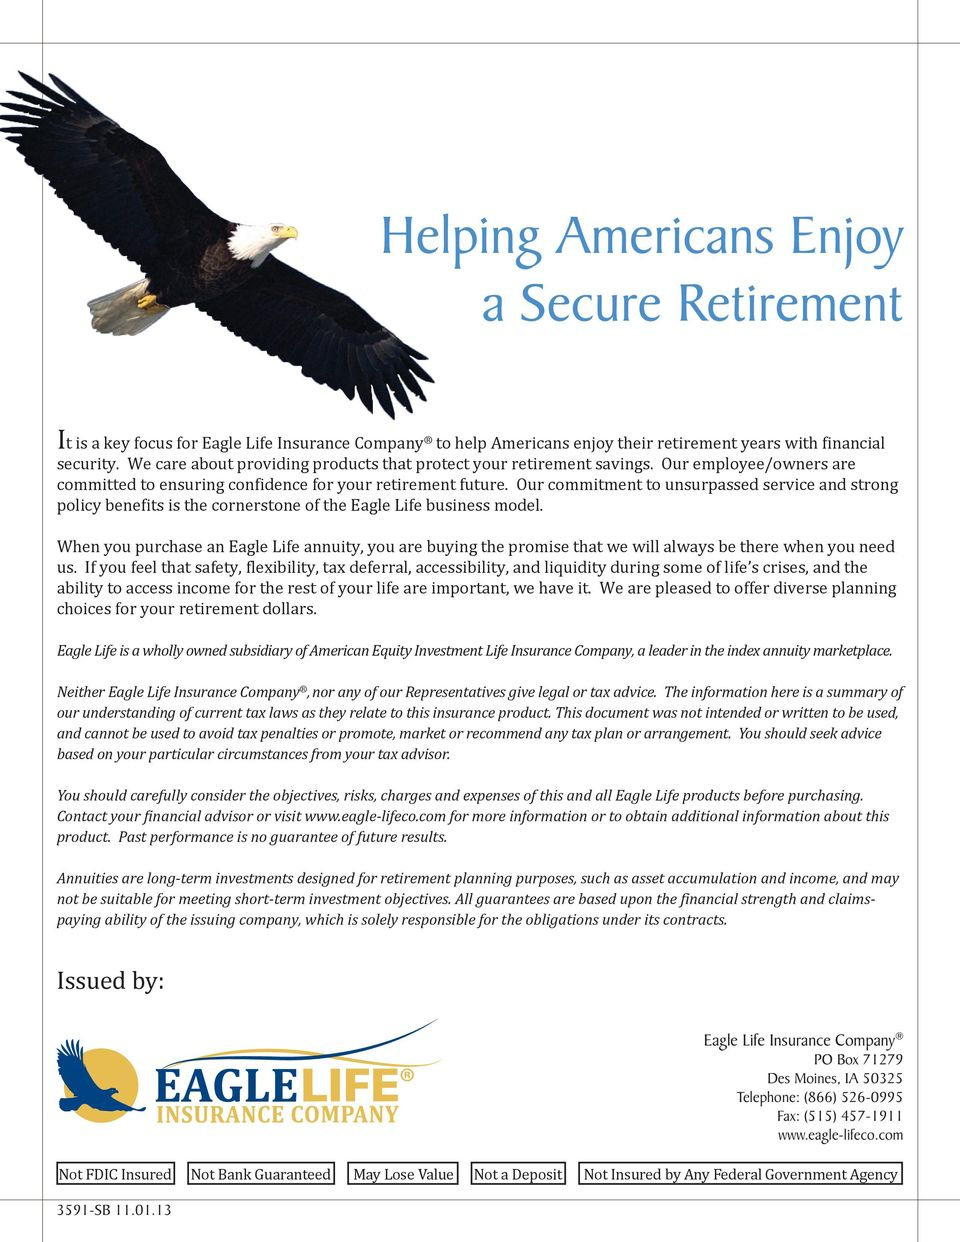 Our commitment to unsurpassed service and strong policy benefits is the cornerstone of the Eagle Life business model.